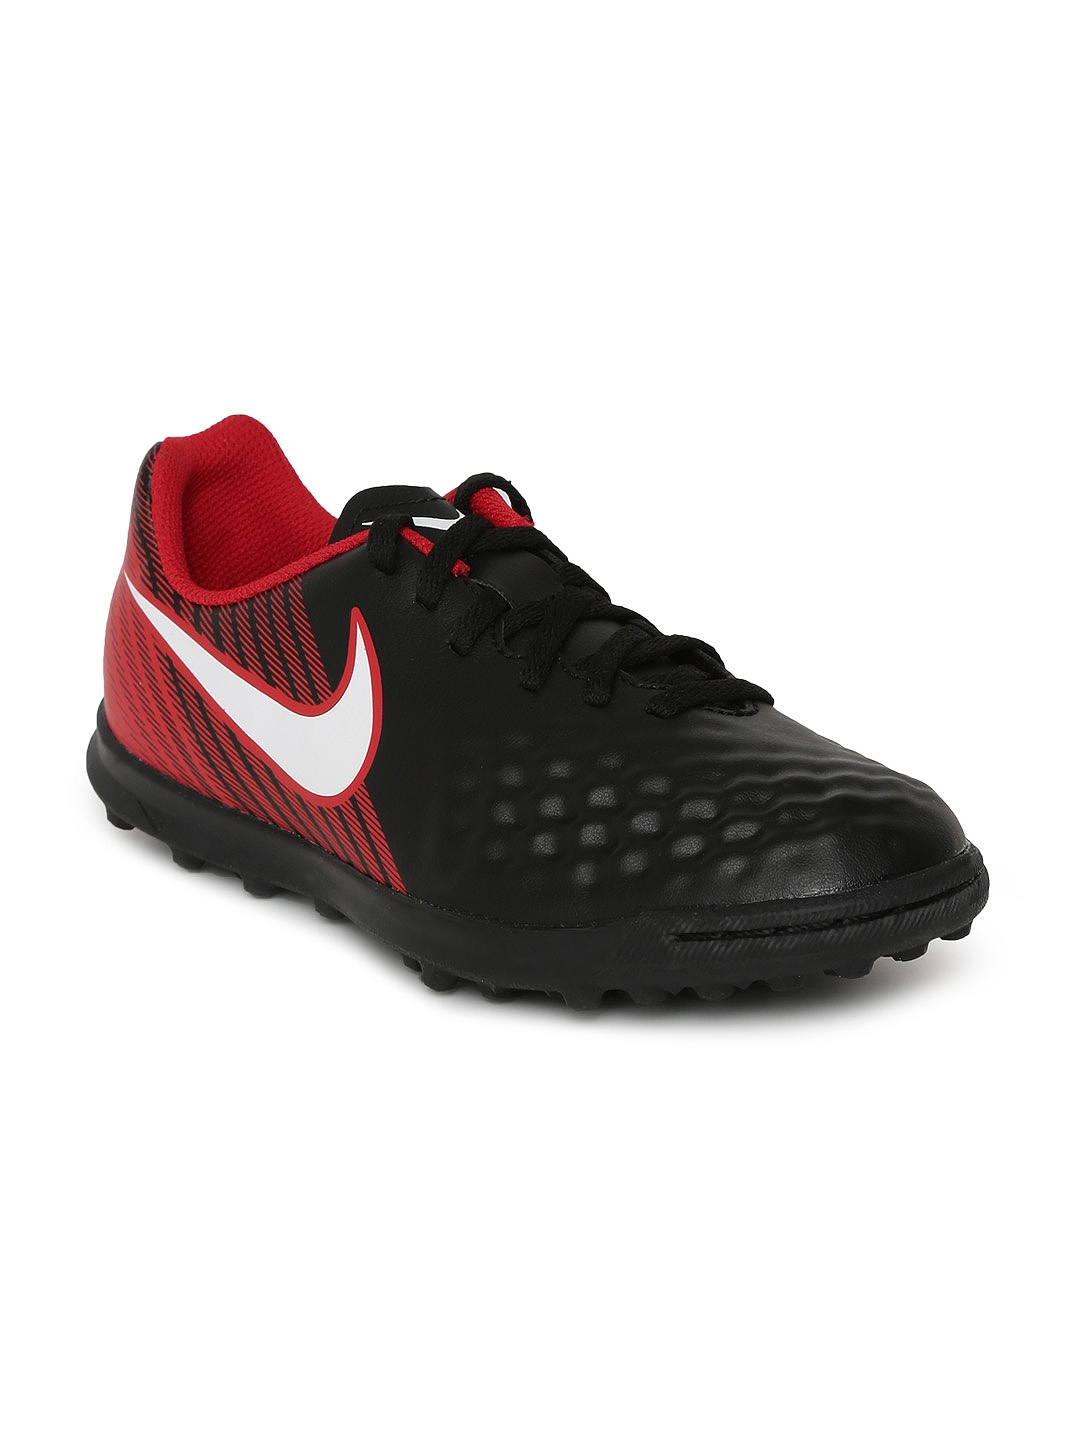 ec7983b61 Buy Nike Kids Jr. MagistaX Ola II (TF) Turf Football Shoes - Sports ...